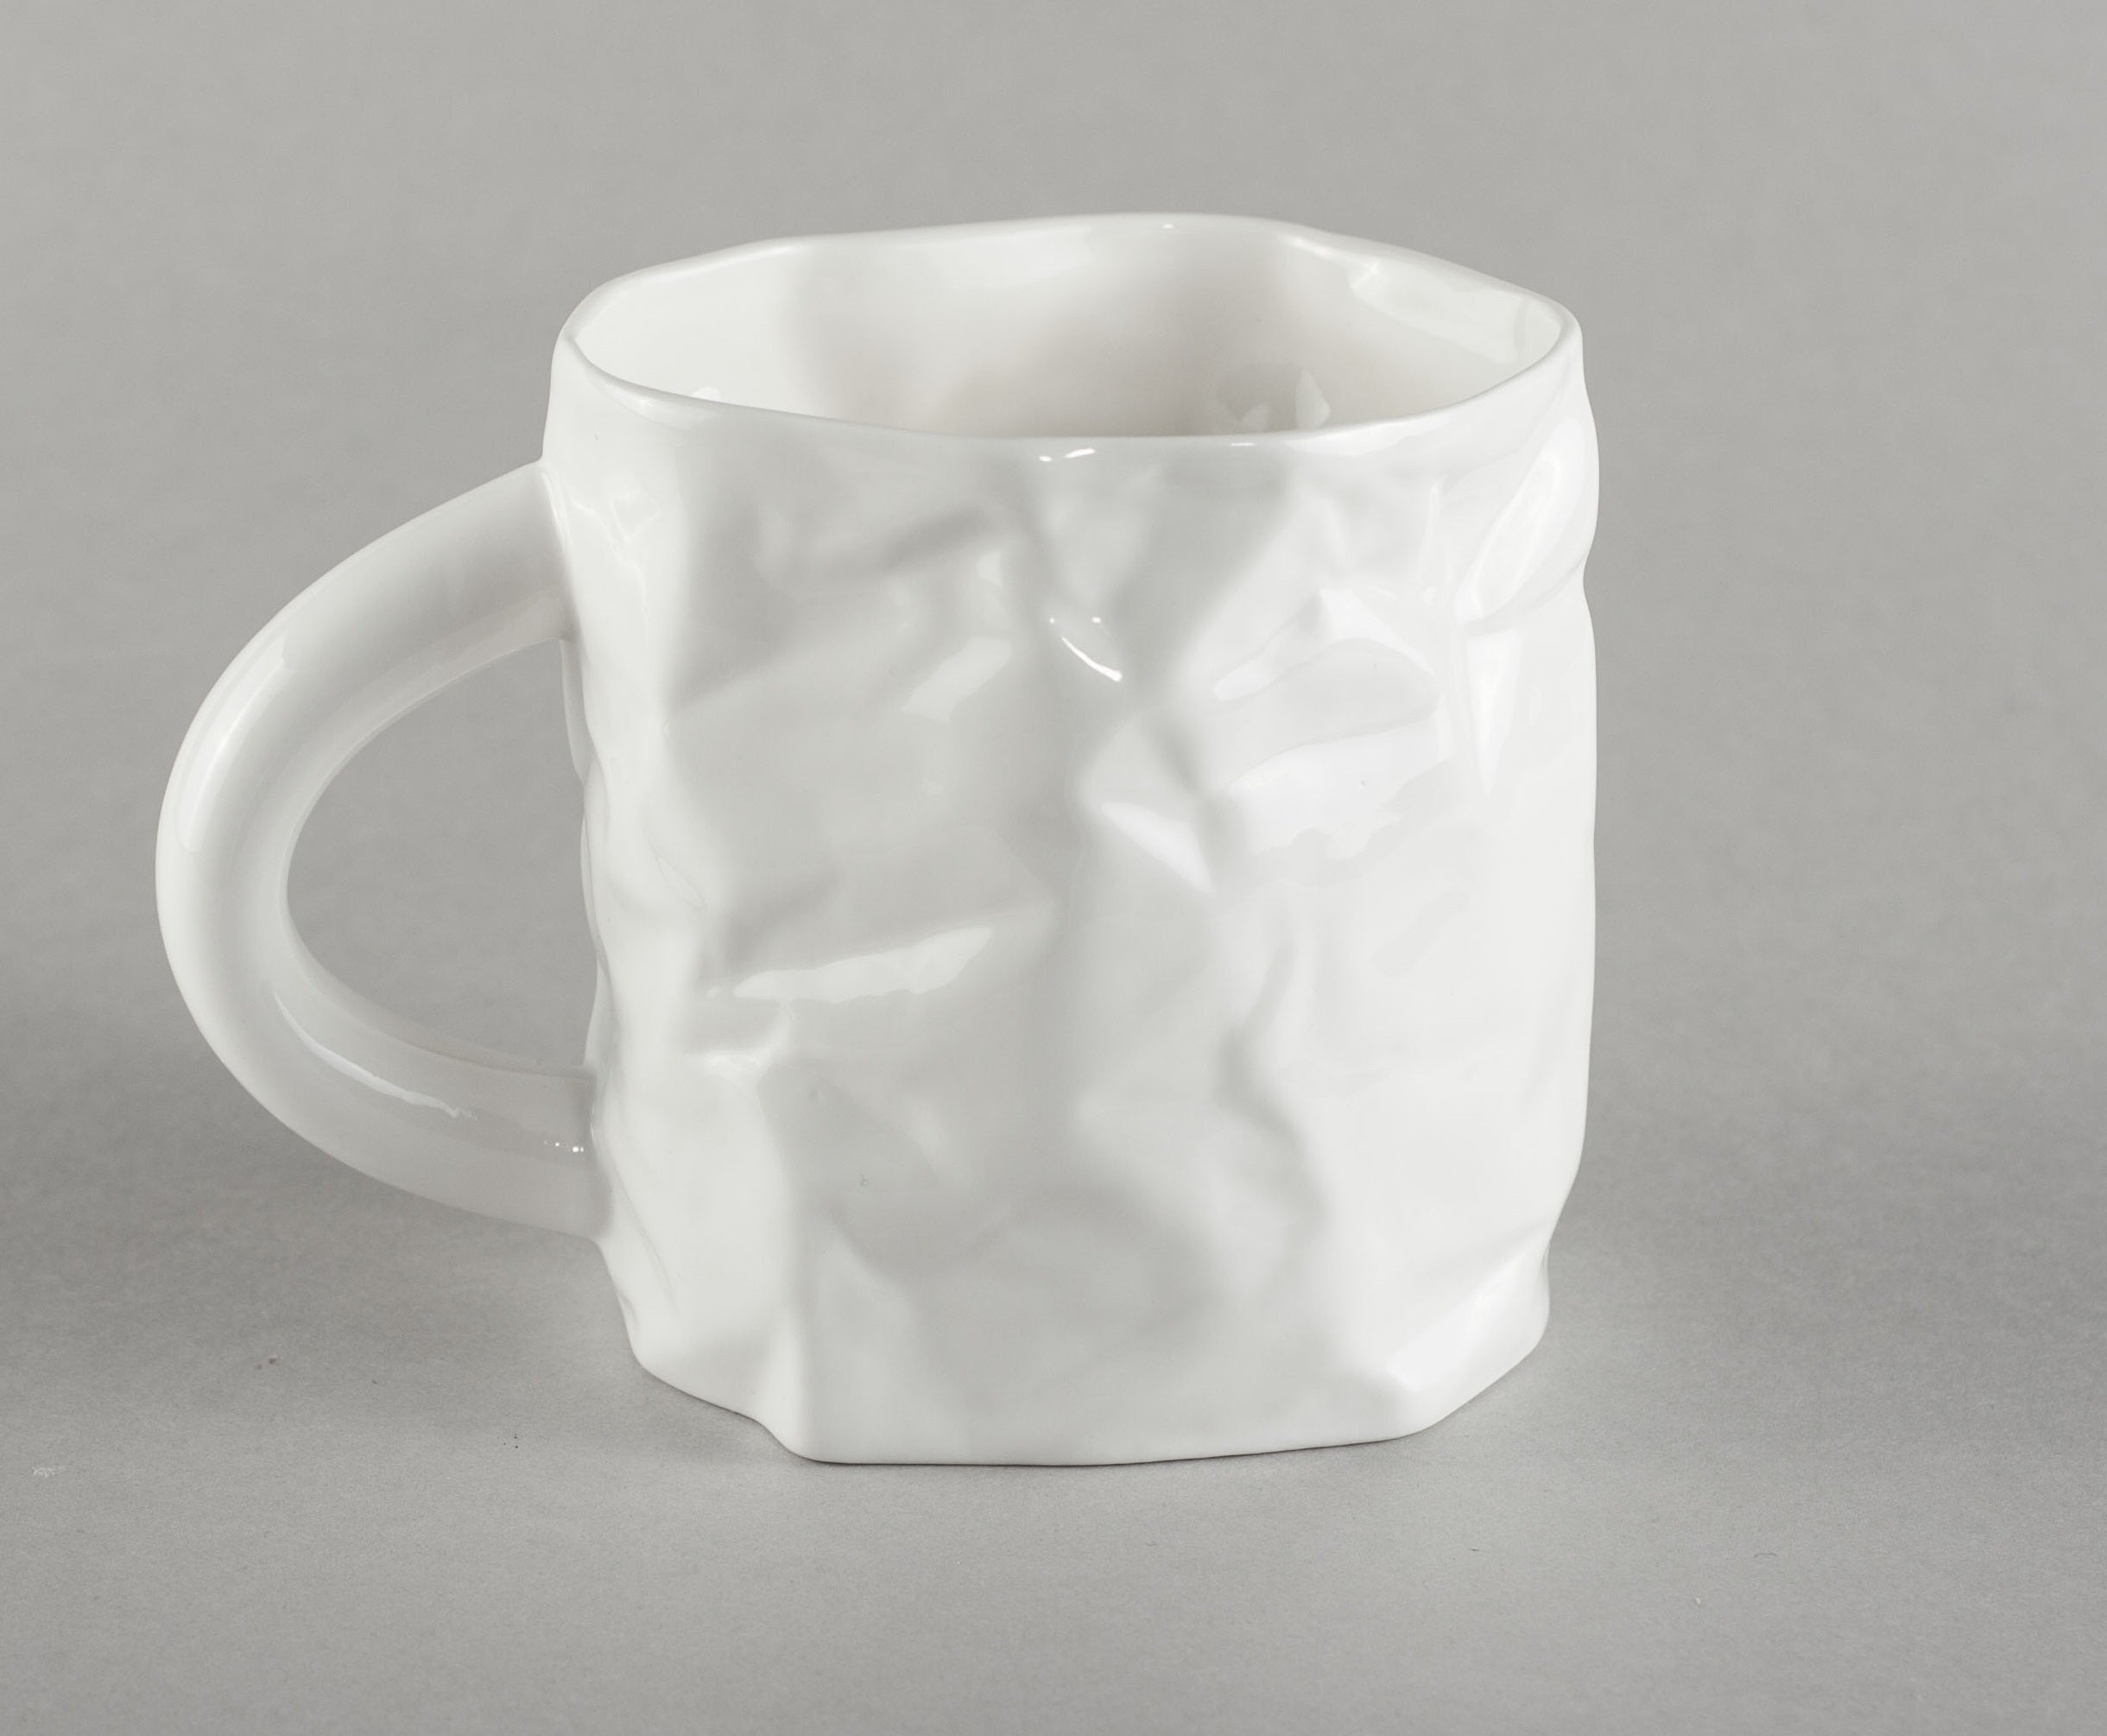 Porcelain Crumpled Tea Mug